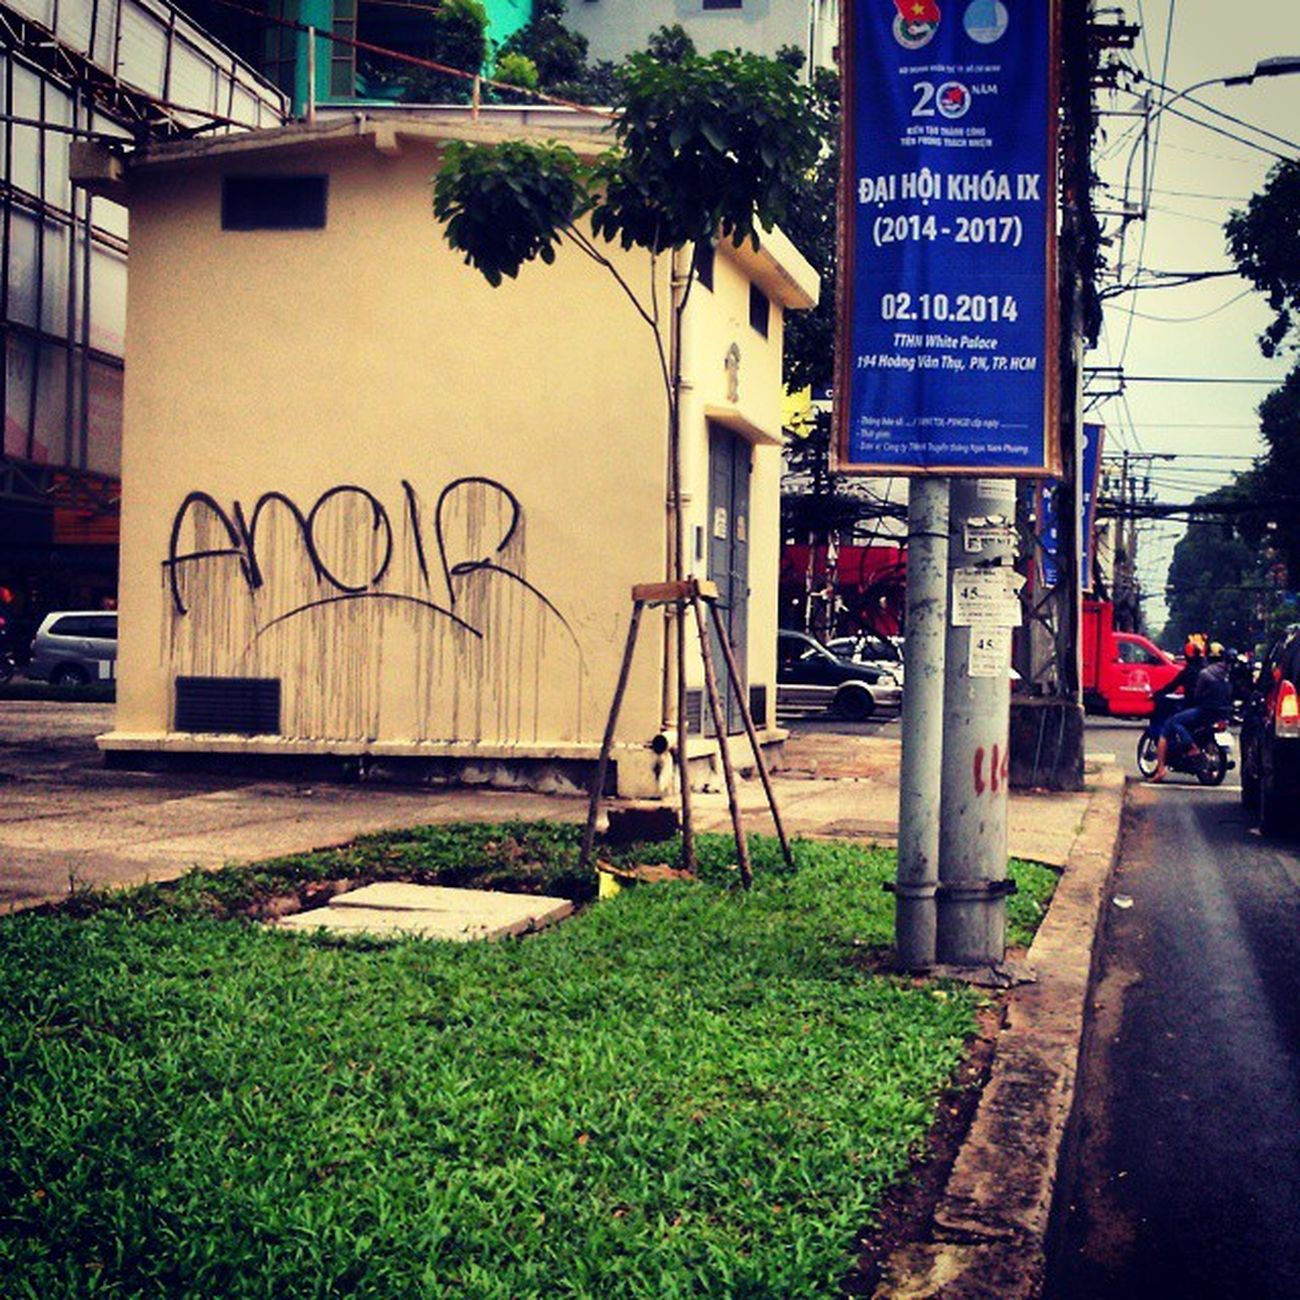 Drippy aholic. Anoir NC Lazyguys Graffitivietnam saigon tagging drippy